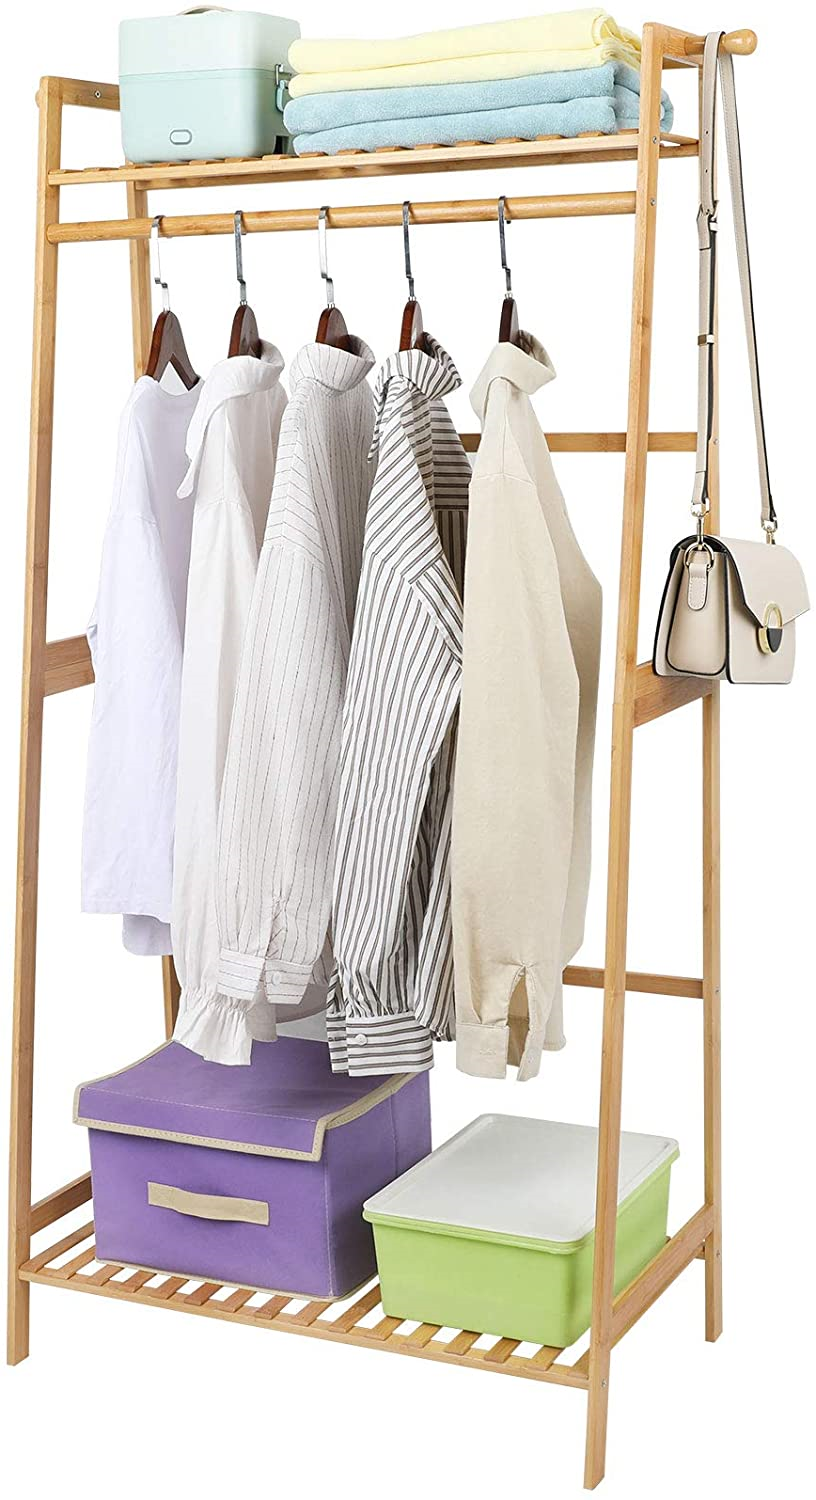 Ufine Bamboo Clothes Hanging Rack with 2 Tier Storage Shelves and 2 Coat Hooks